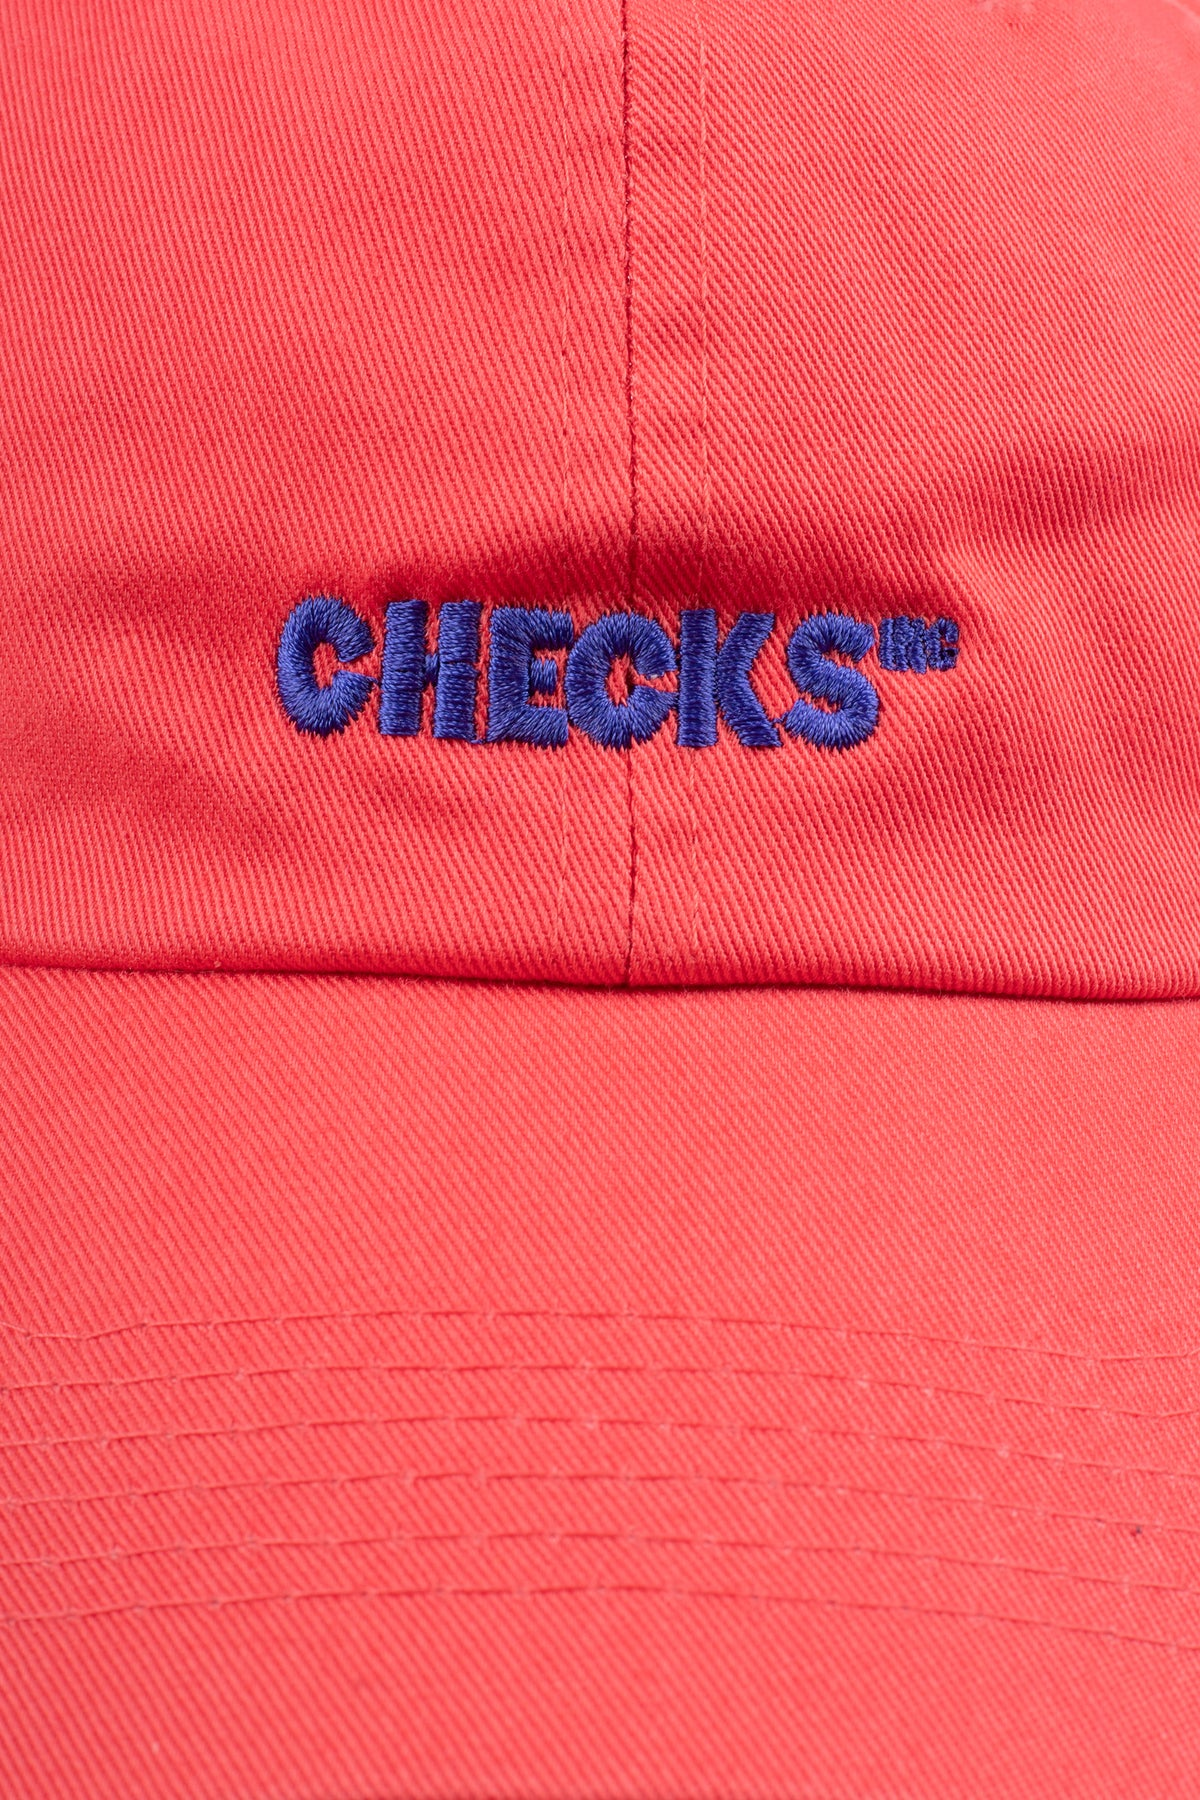 Classic Cap Coral | CHECKS DOWNTOWN